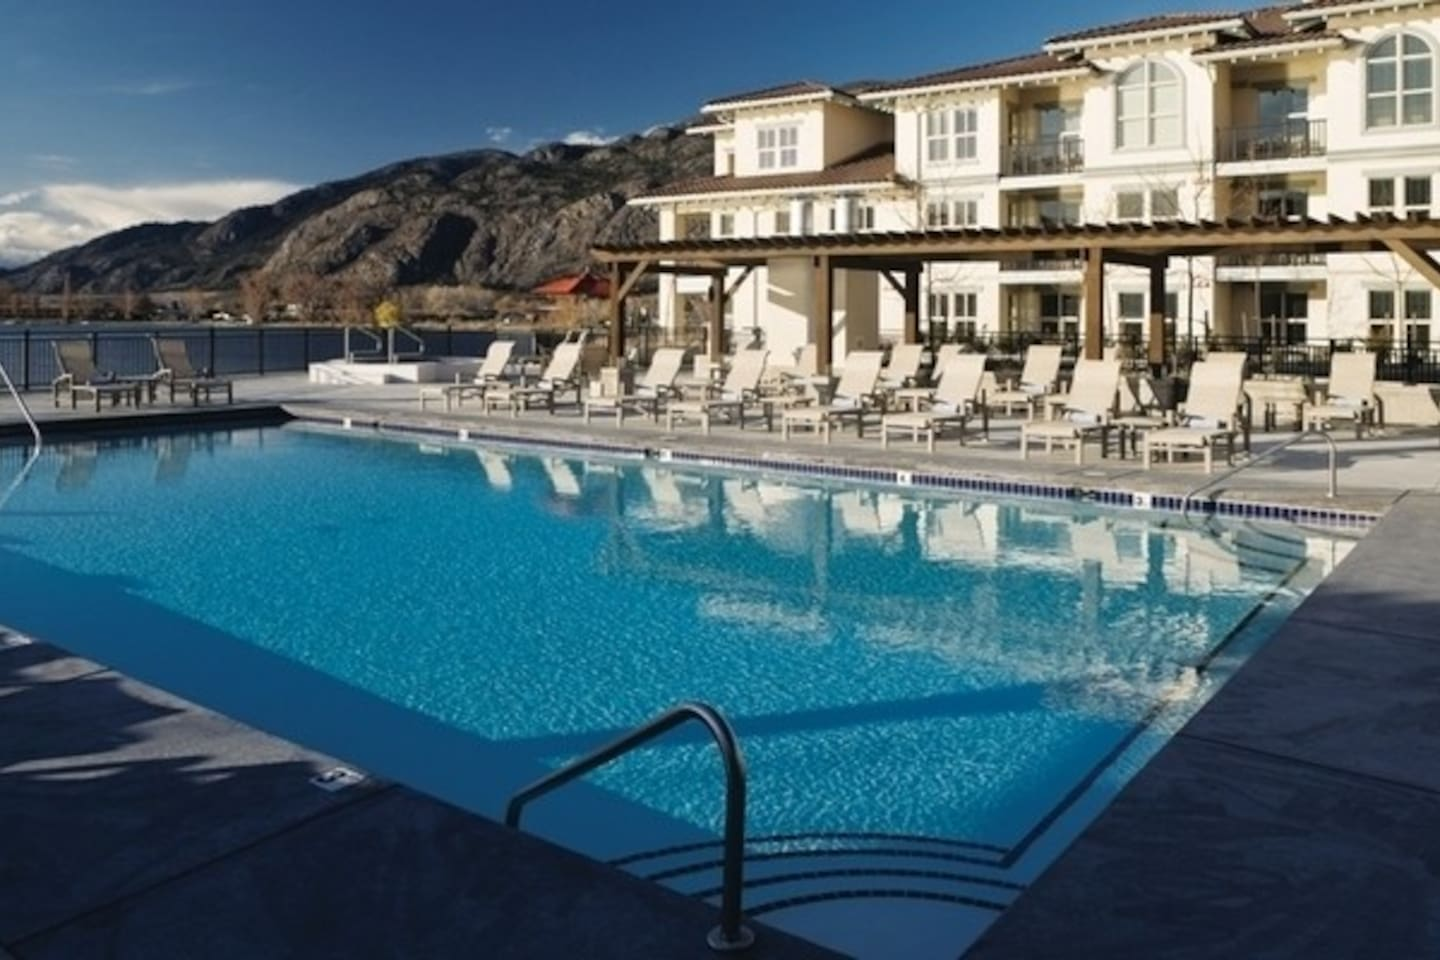 Bask in the sun by the outdoor pool, overlooking stunning Osoyoos Lake